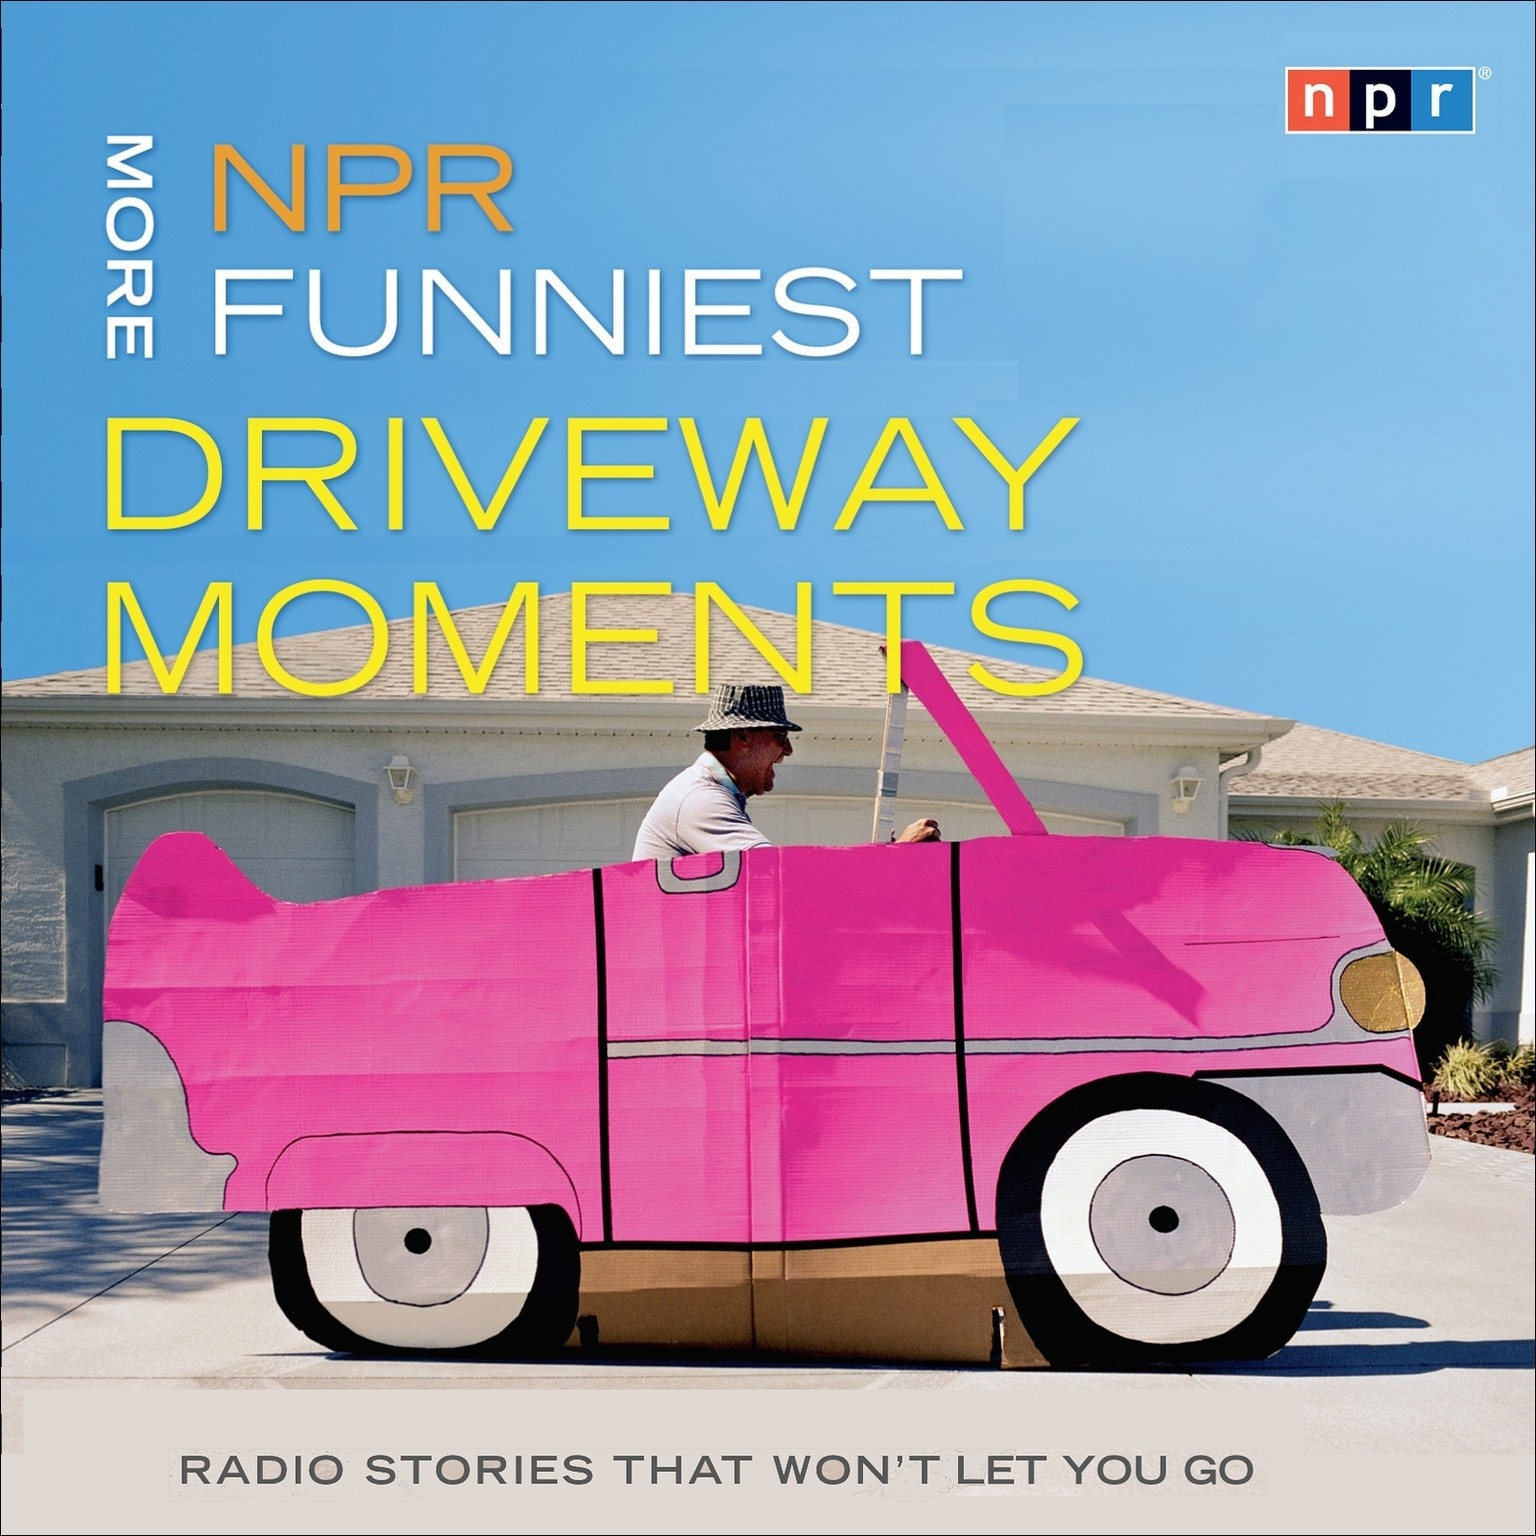 Printable NPR More Funniest Driveway Moments: Radio Stories that Won't Let You Go Audiobook Cover Art